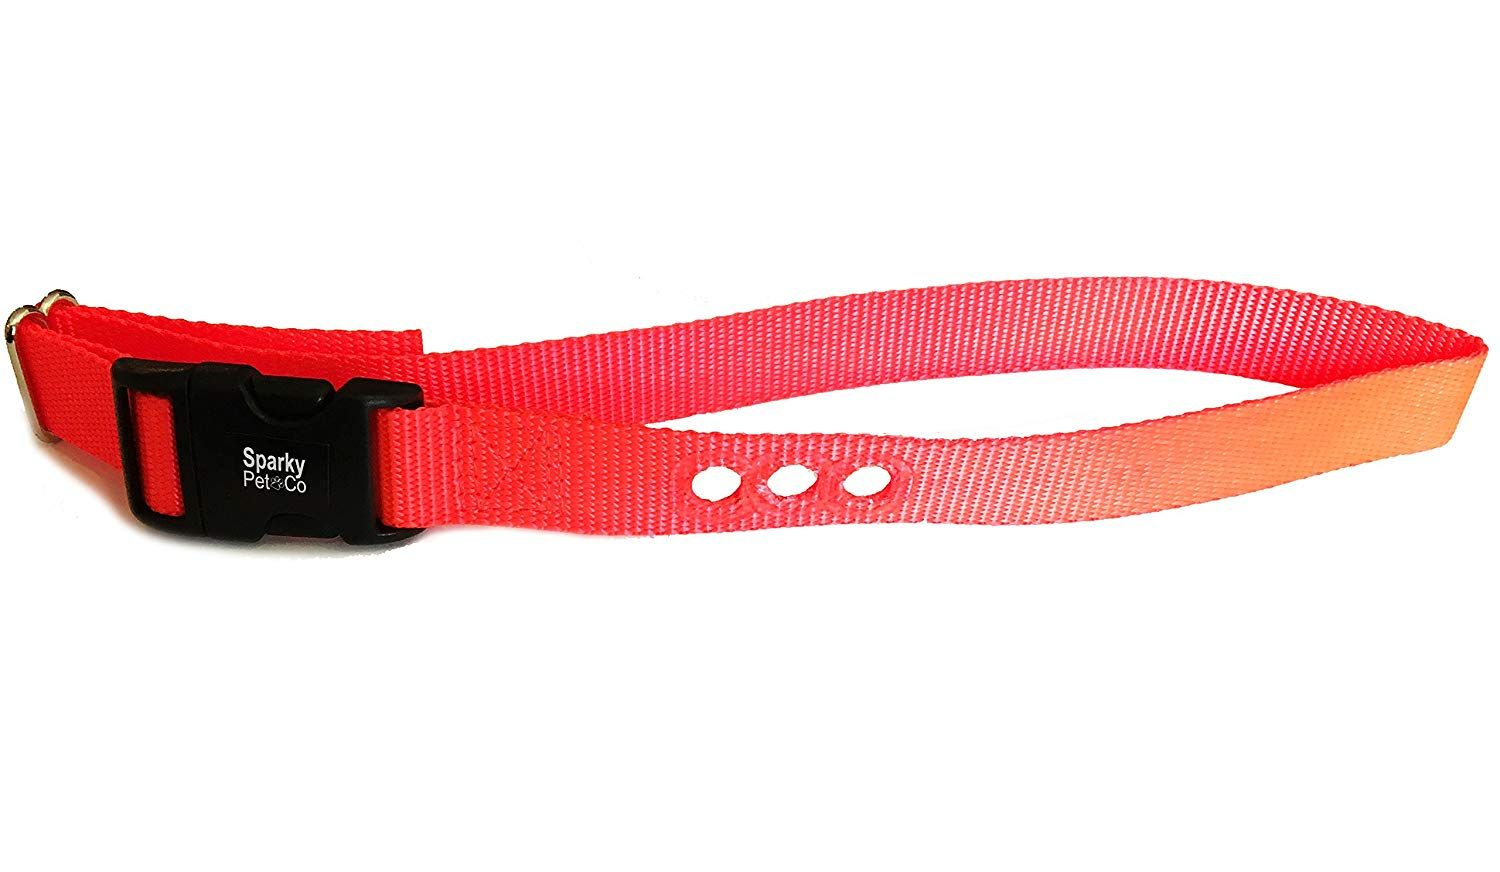 Sparky Petco 3 4 Petsafe Rfa 68 Compatible Basic Deluxe Bark Replacement 3 Consecutive Hole Dog Bark Collar Nice Of You To Have Dro Petco Dog Barking Dogs